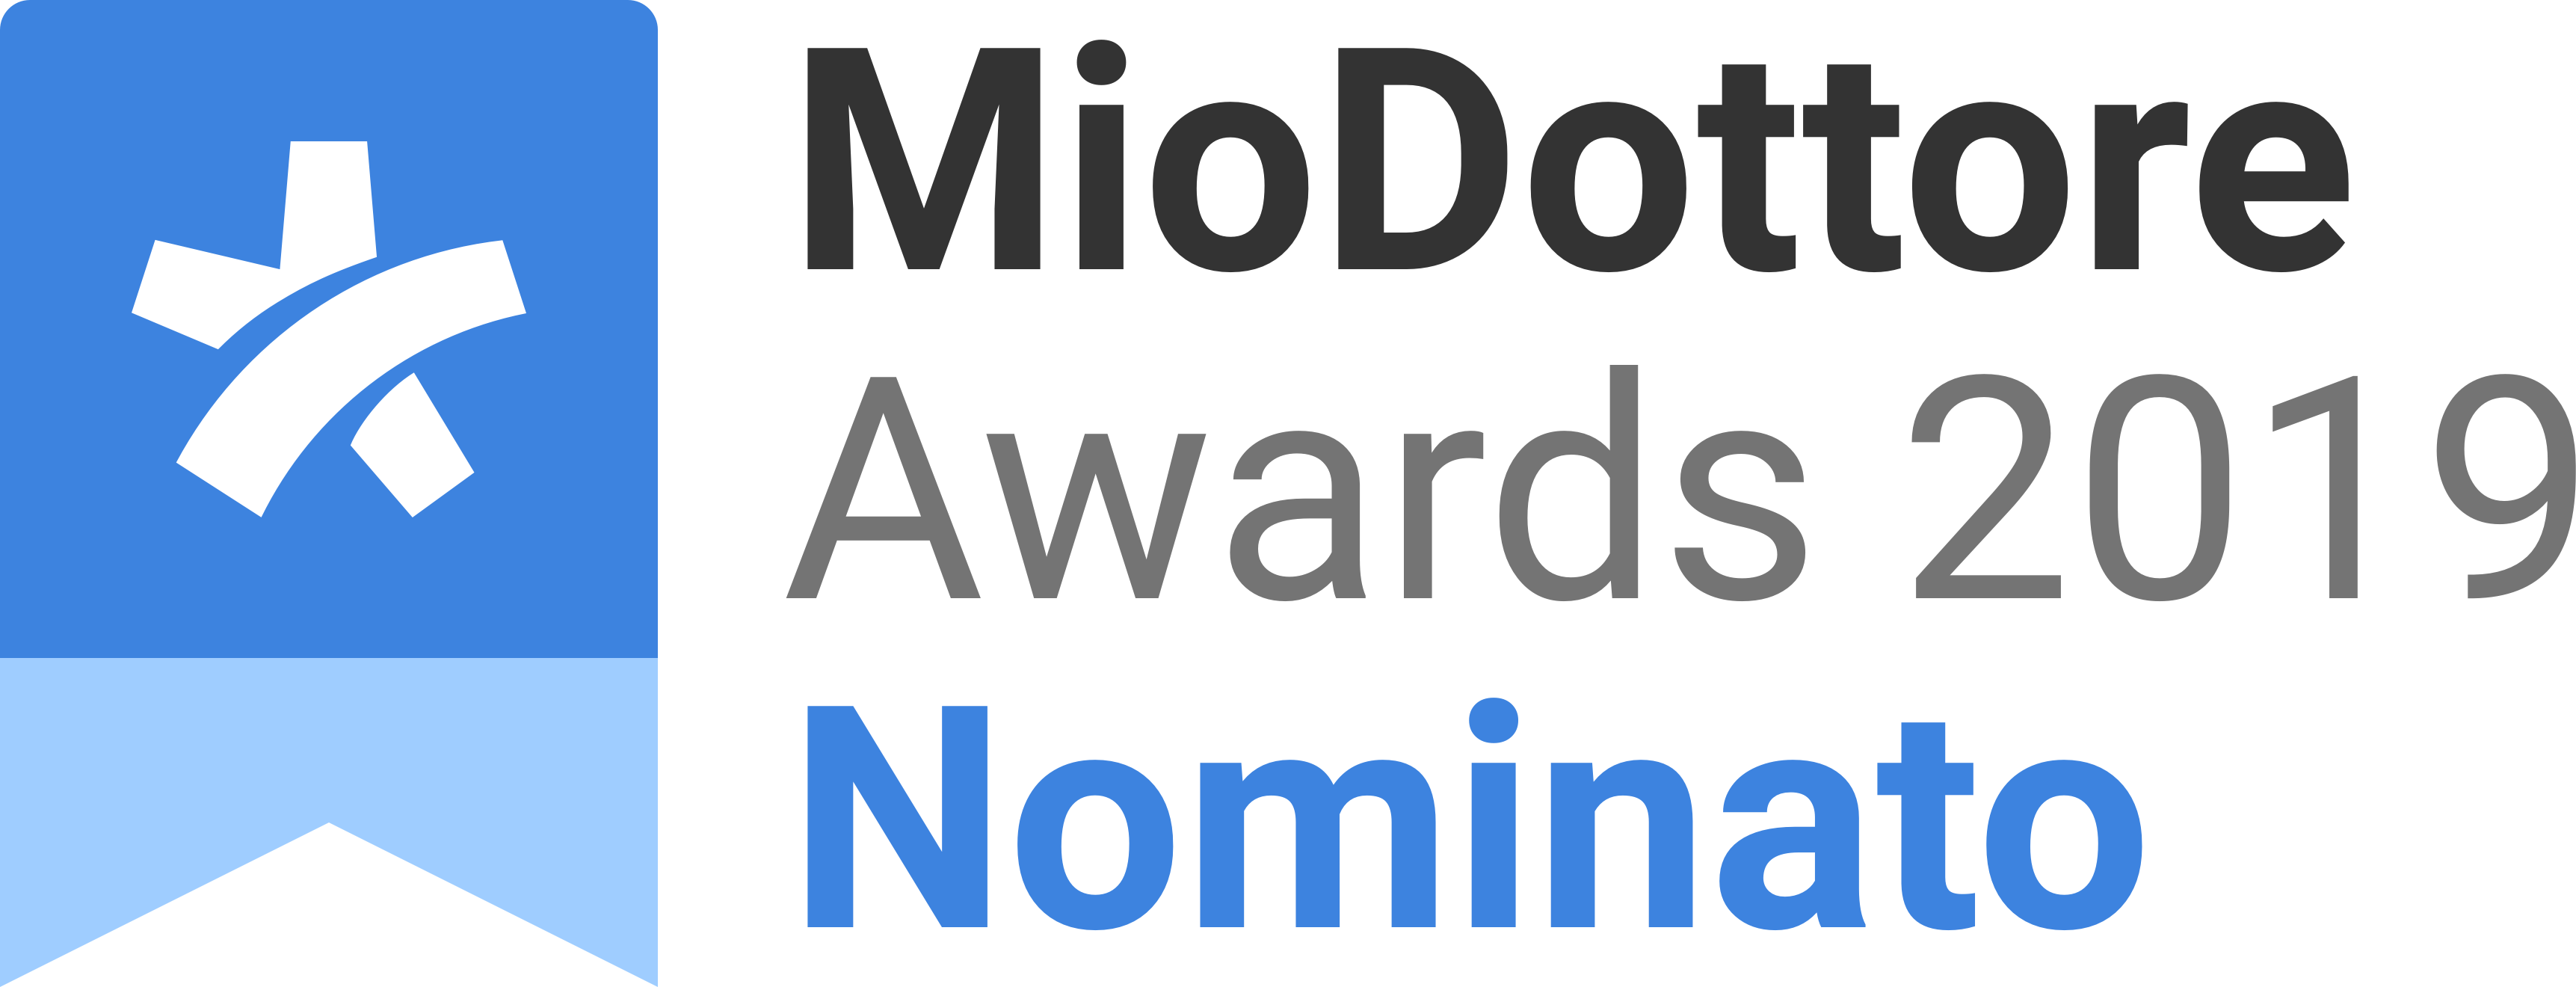 miodottore-awards-2019-nominato-logo-primary-light-bg